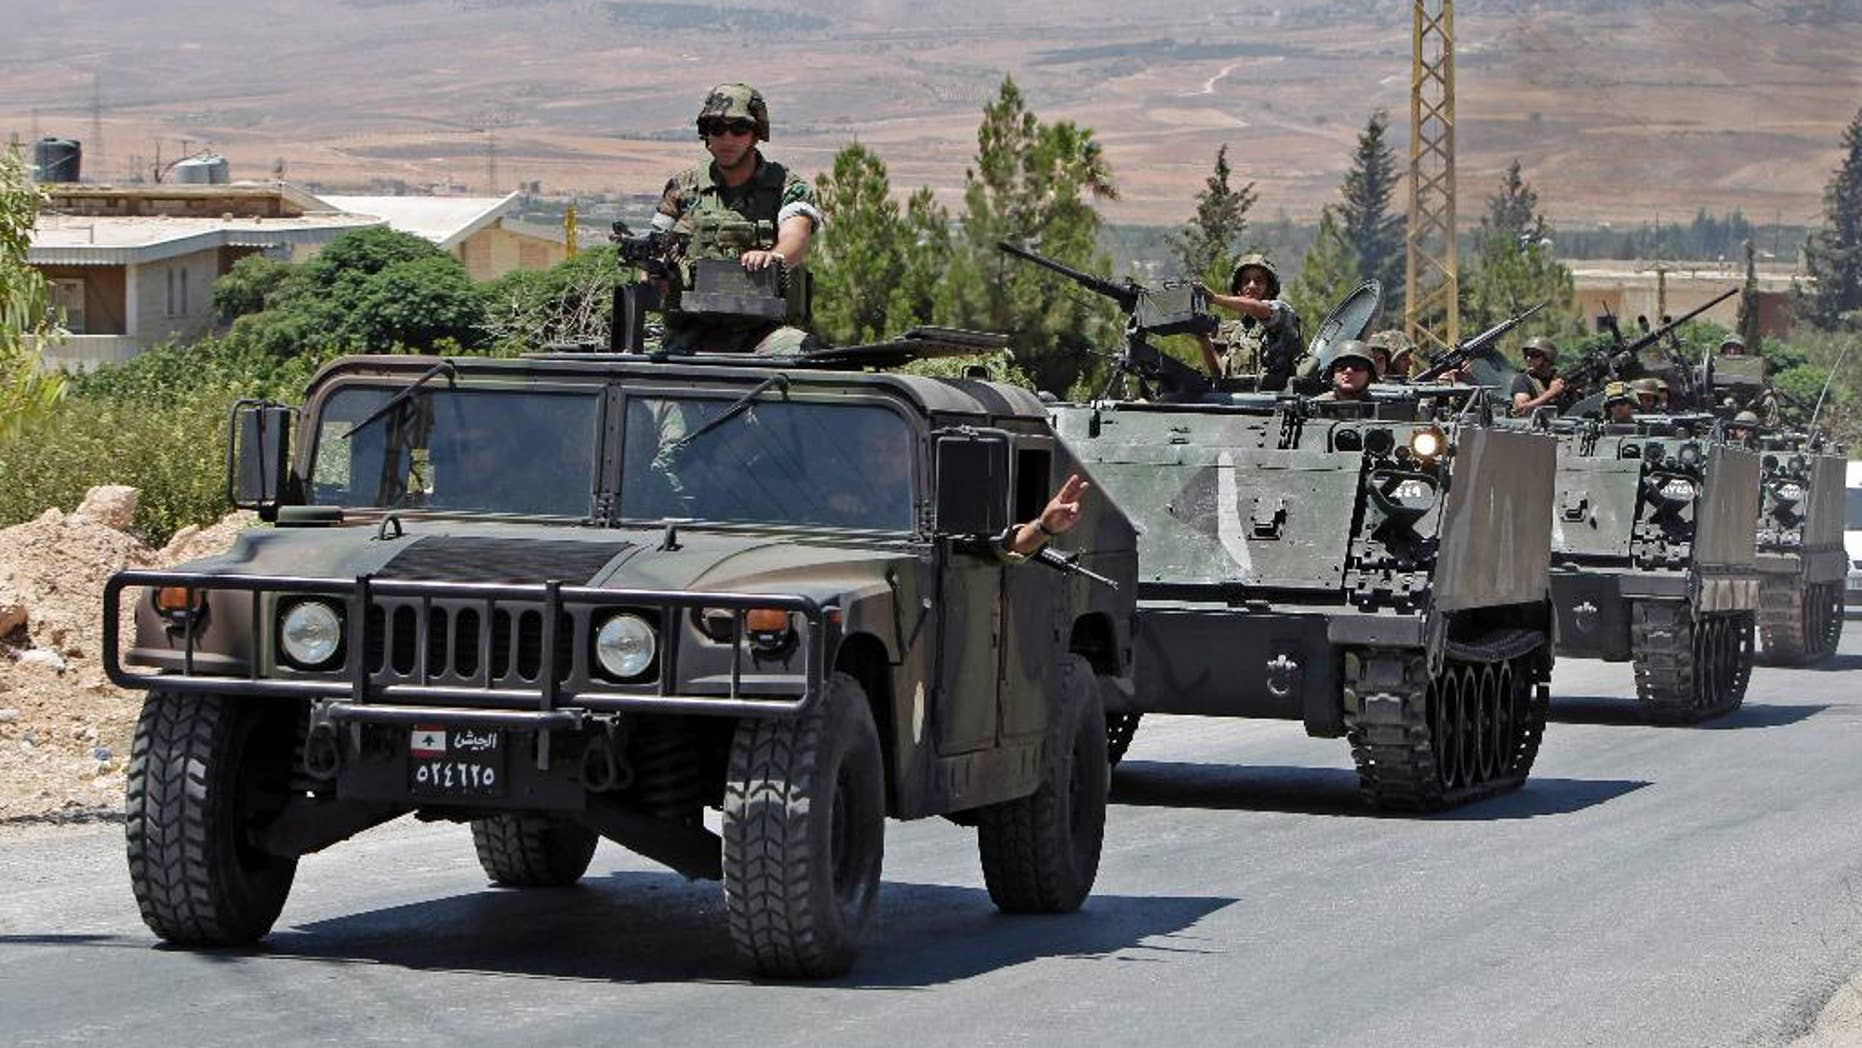 FILE - In this Aug. 4, 2014, file photo, Lebanese army reinforcements arrive at an area on the outskirts of Arsal, a predominantly Sunni Muslim town near the Syrian border in eastern Lebanon. A roadside bomb exploded near an army patrol in Arsal, wounding at least three soldiers, the military said Friday, Nov. 14. (AP Photo/Bilal Hussein, File)